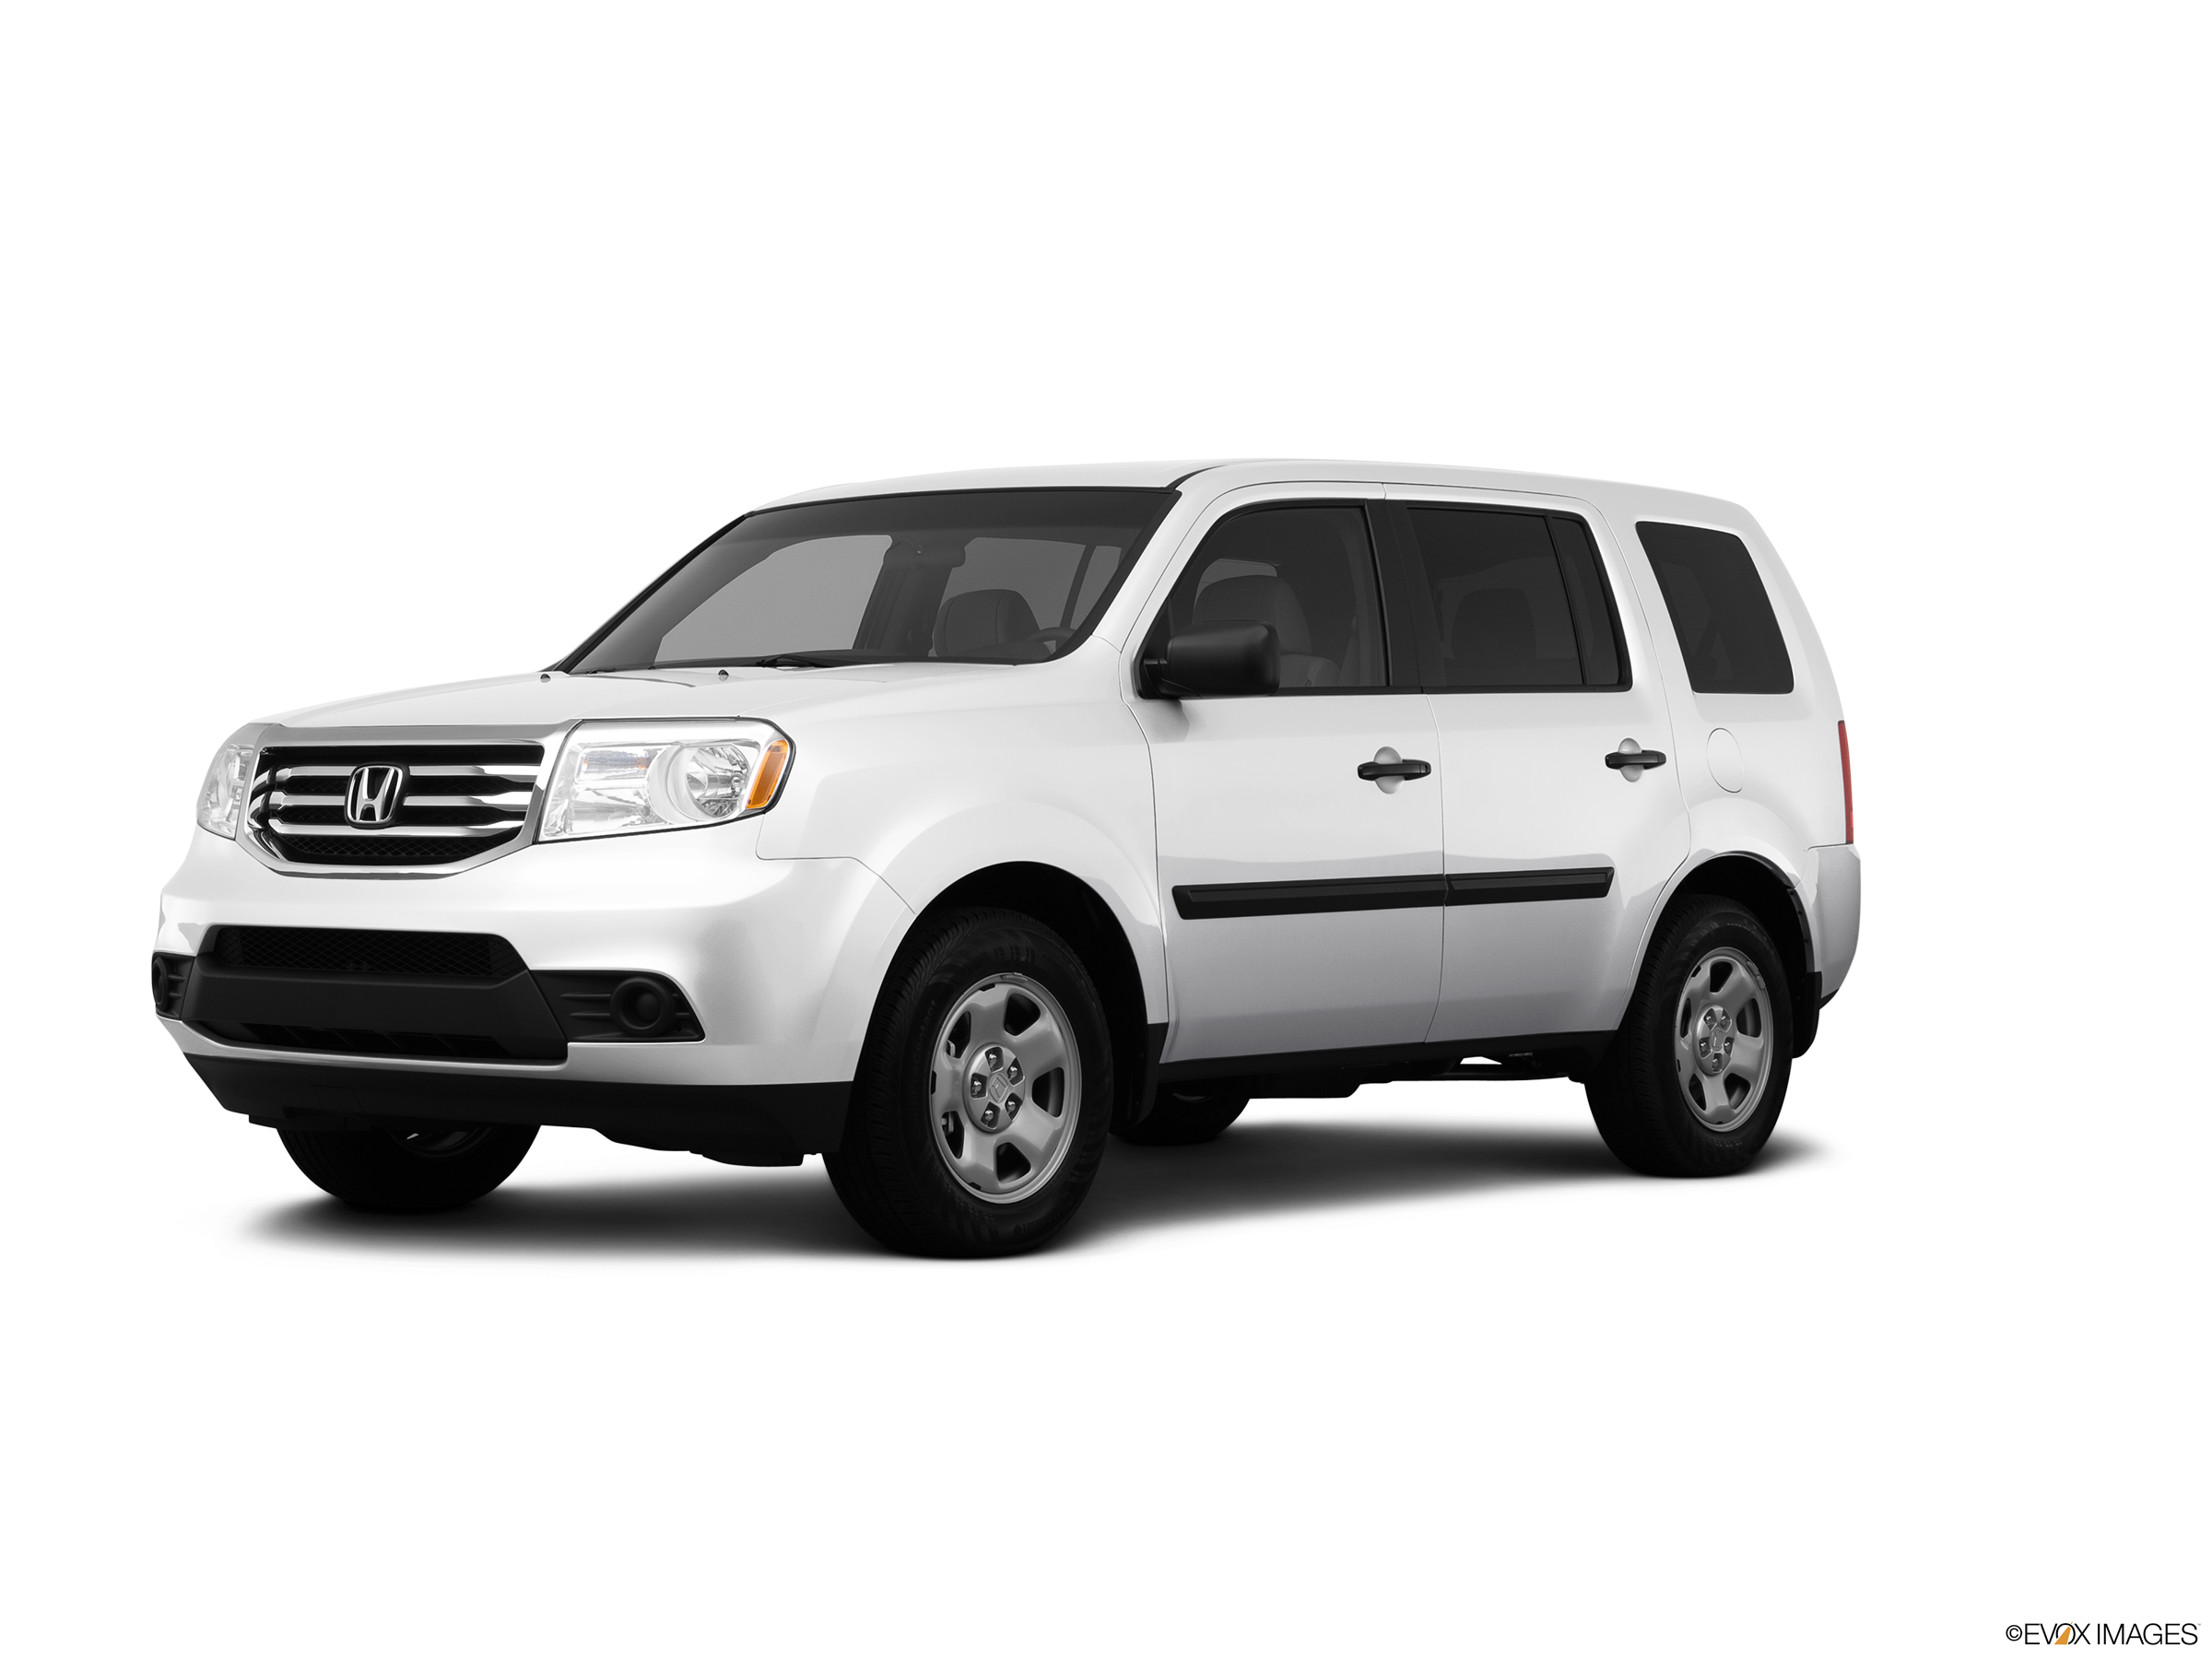 2012 honda pilot values cars for sale kelley blue book 2012 honda pilot values cars for sale